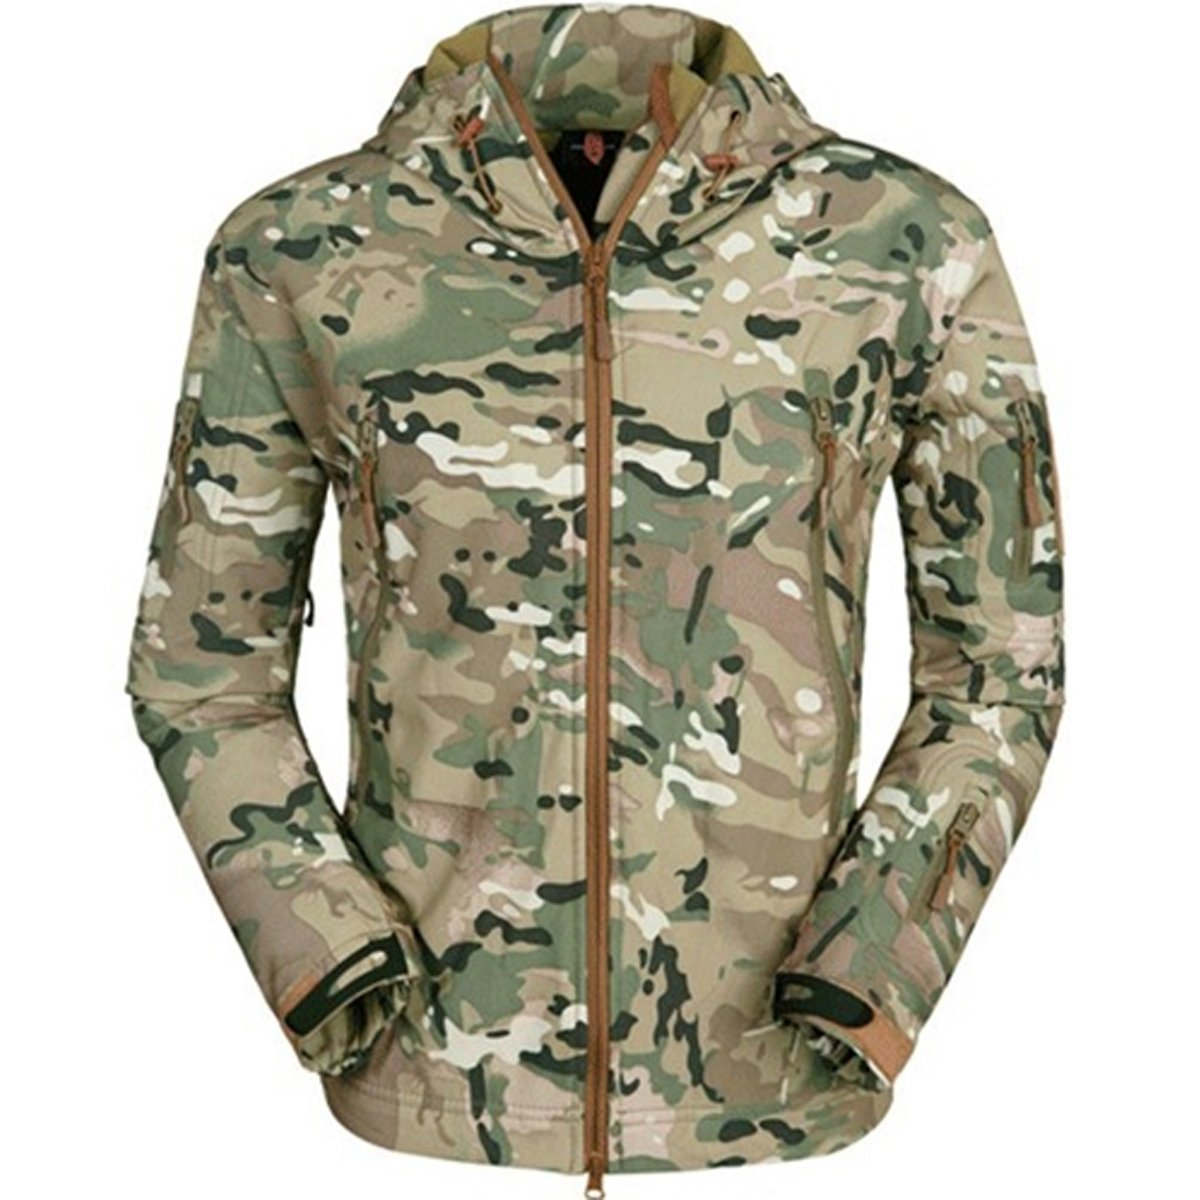 Eglemall Men's Outdoor Hunting Soft Shell Waterproof Tactical Fleece Jackets (XXX-Large, CP) by Eglemall